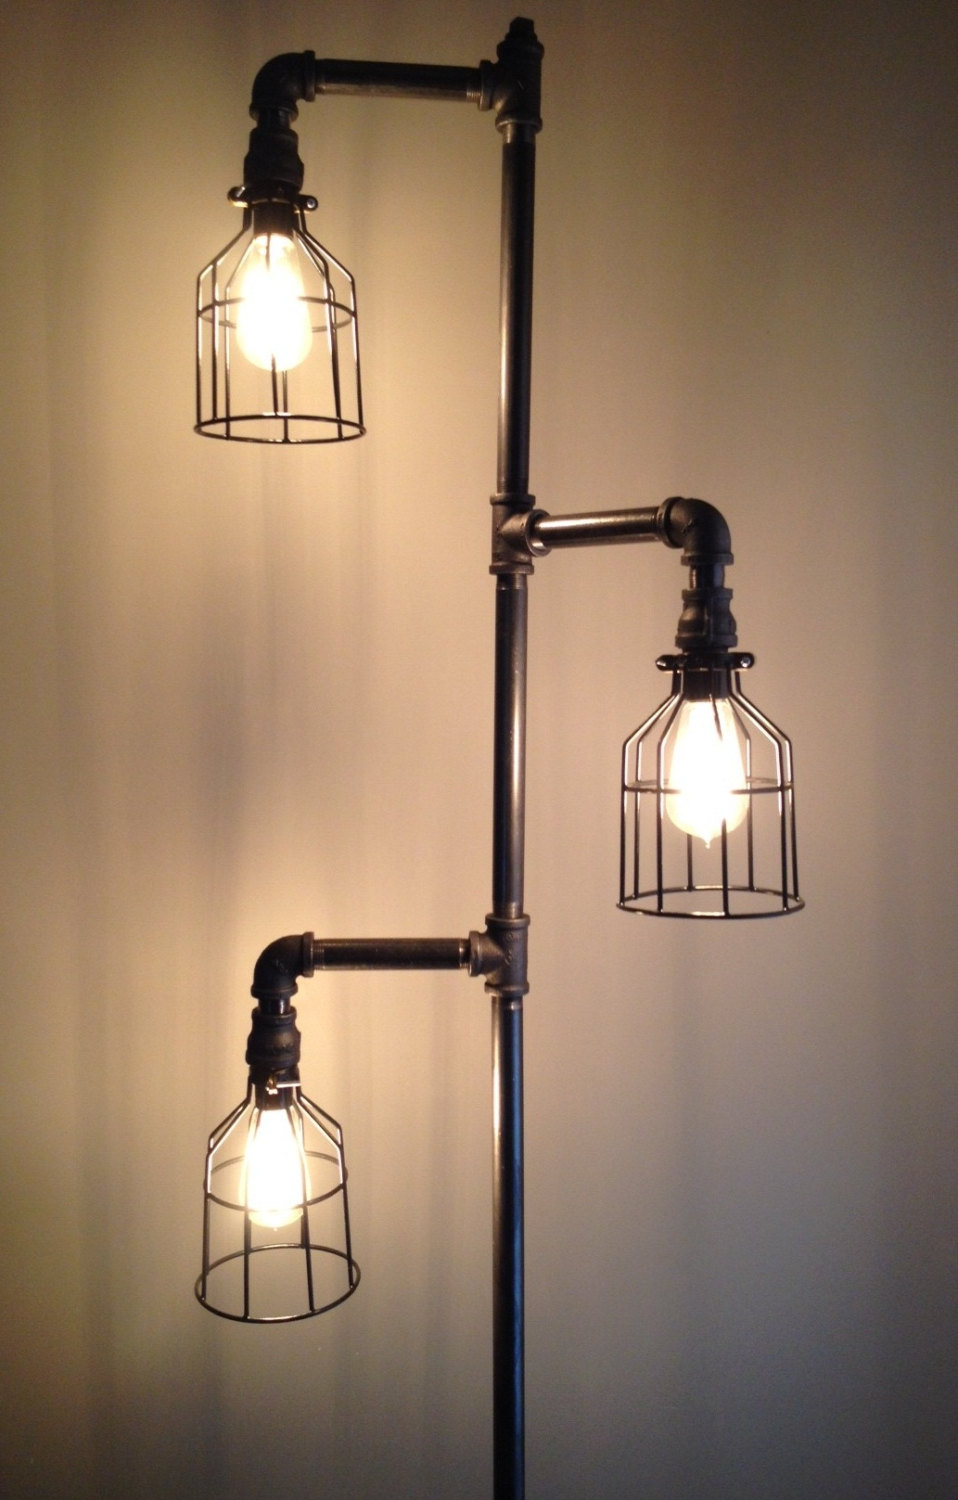 Lamps images diy lamp 40 diy lamps and lights you can make yourself how to solutioingenieria Image collections